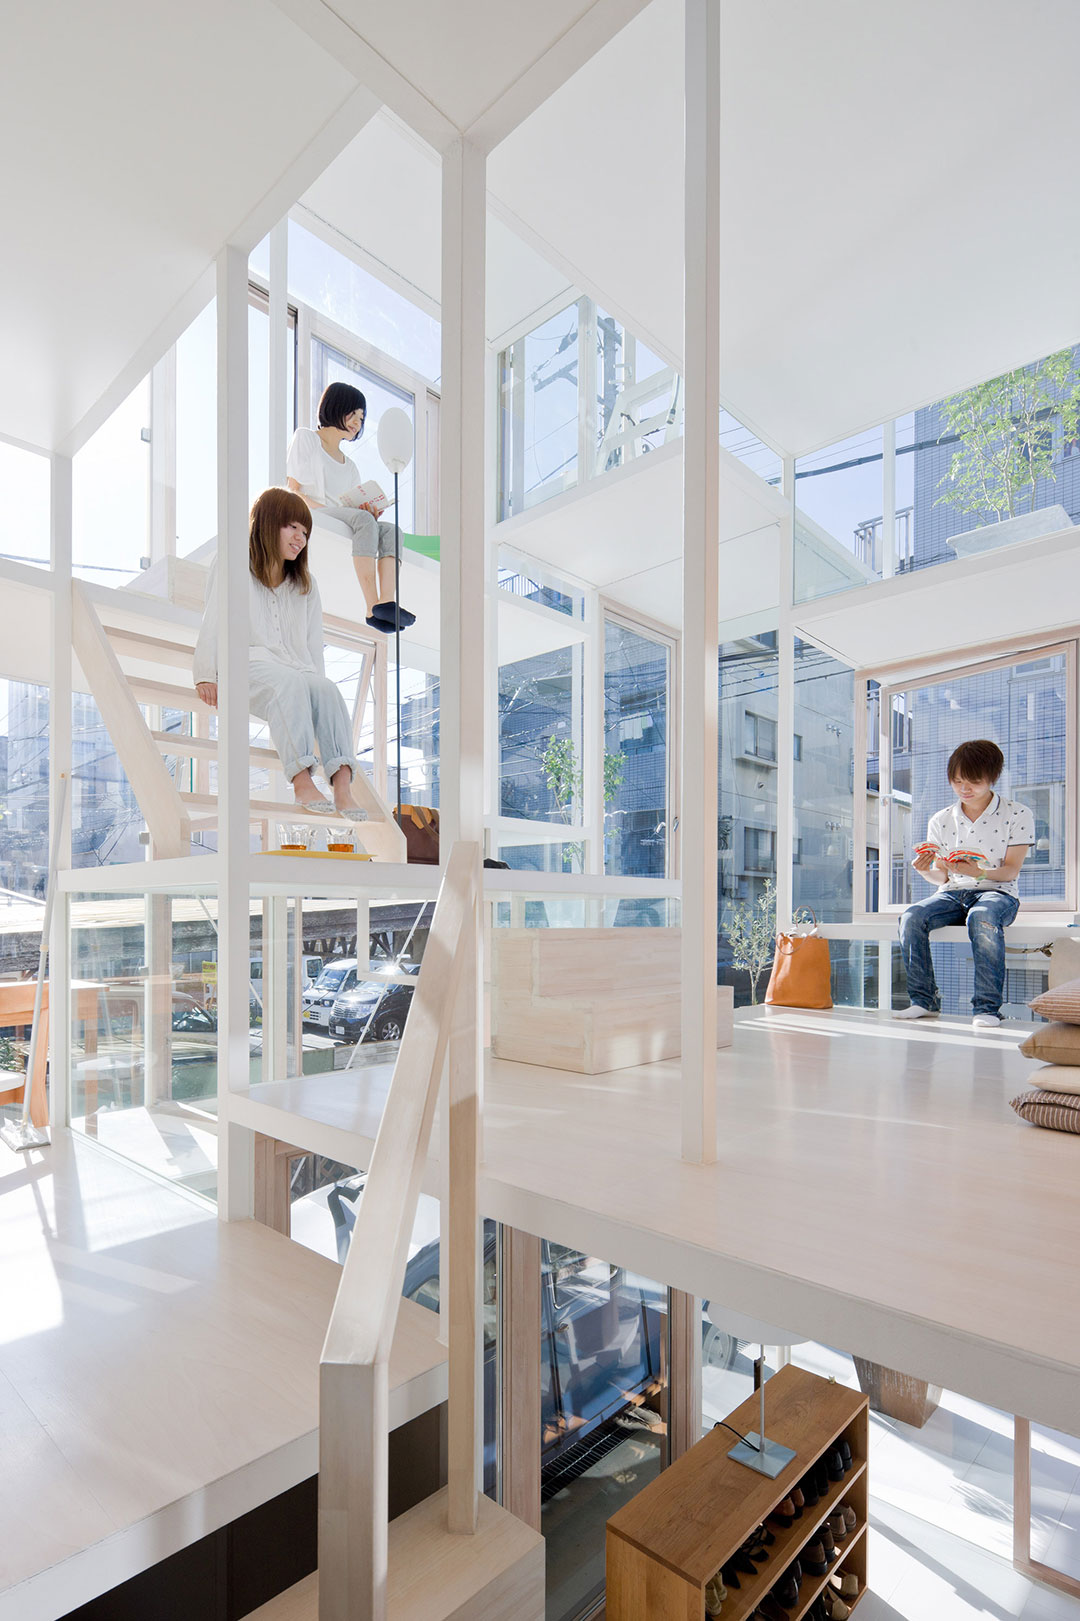 Radical house house na sou fujimoto architects for In house architect